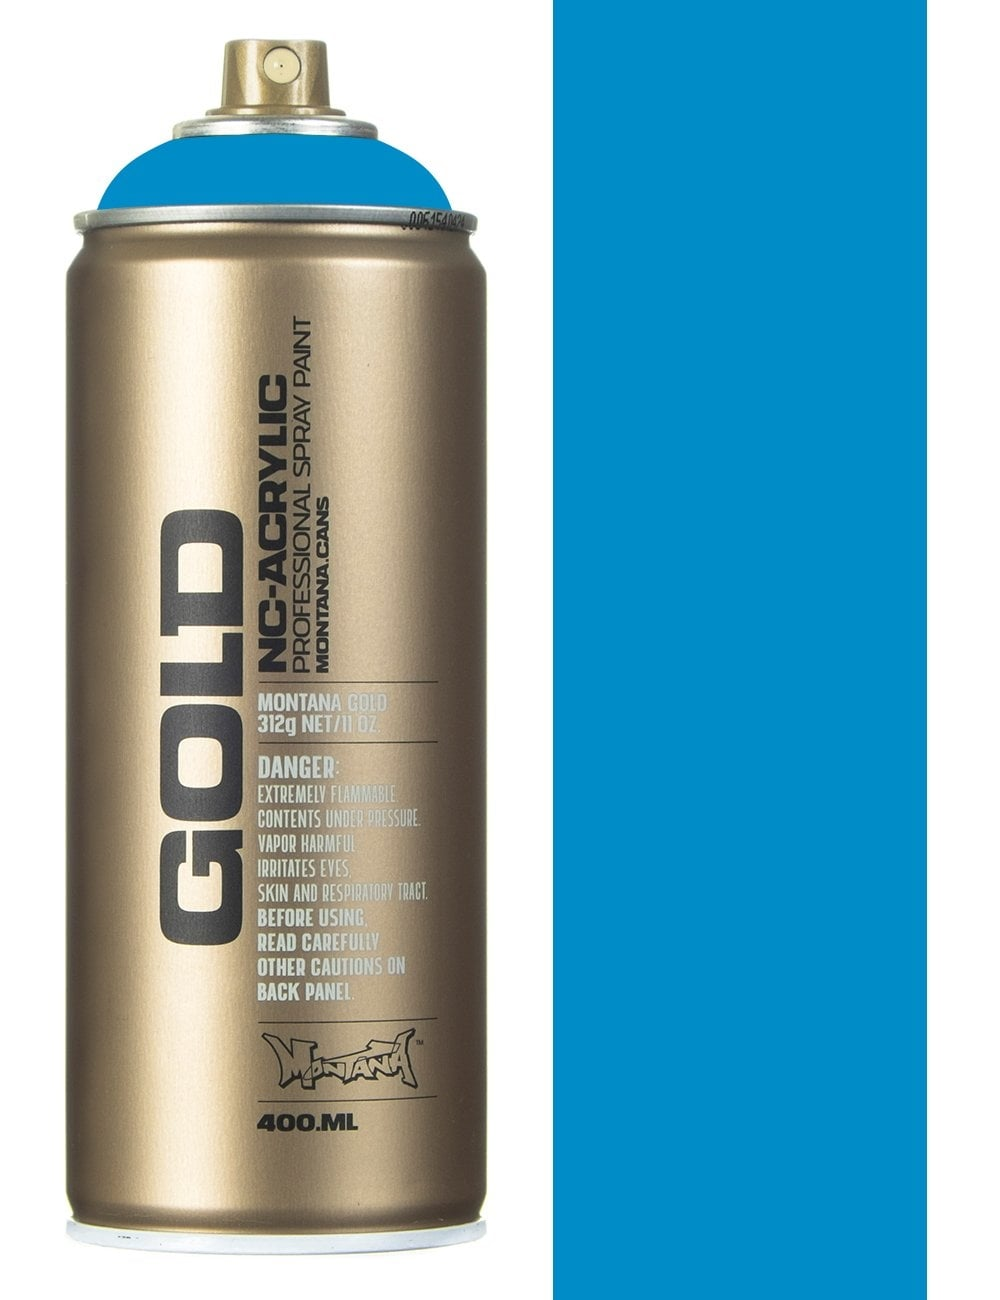 montana gold sky blue spray paint 400ml spray paint. Black Bedroom Furniture Sets. Home Design Ideas